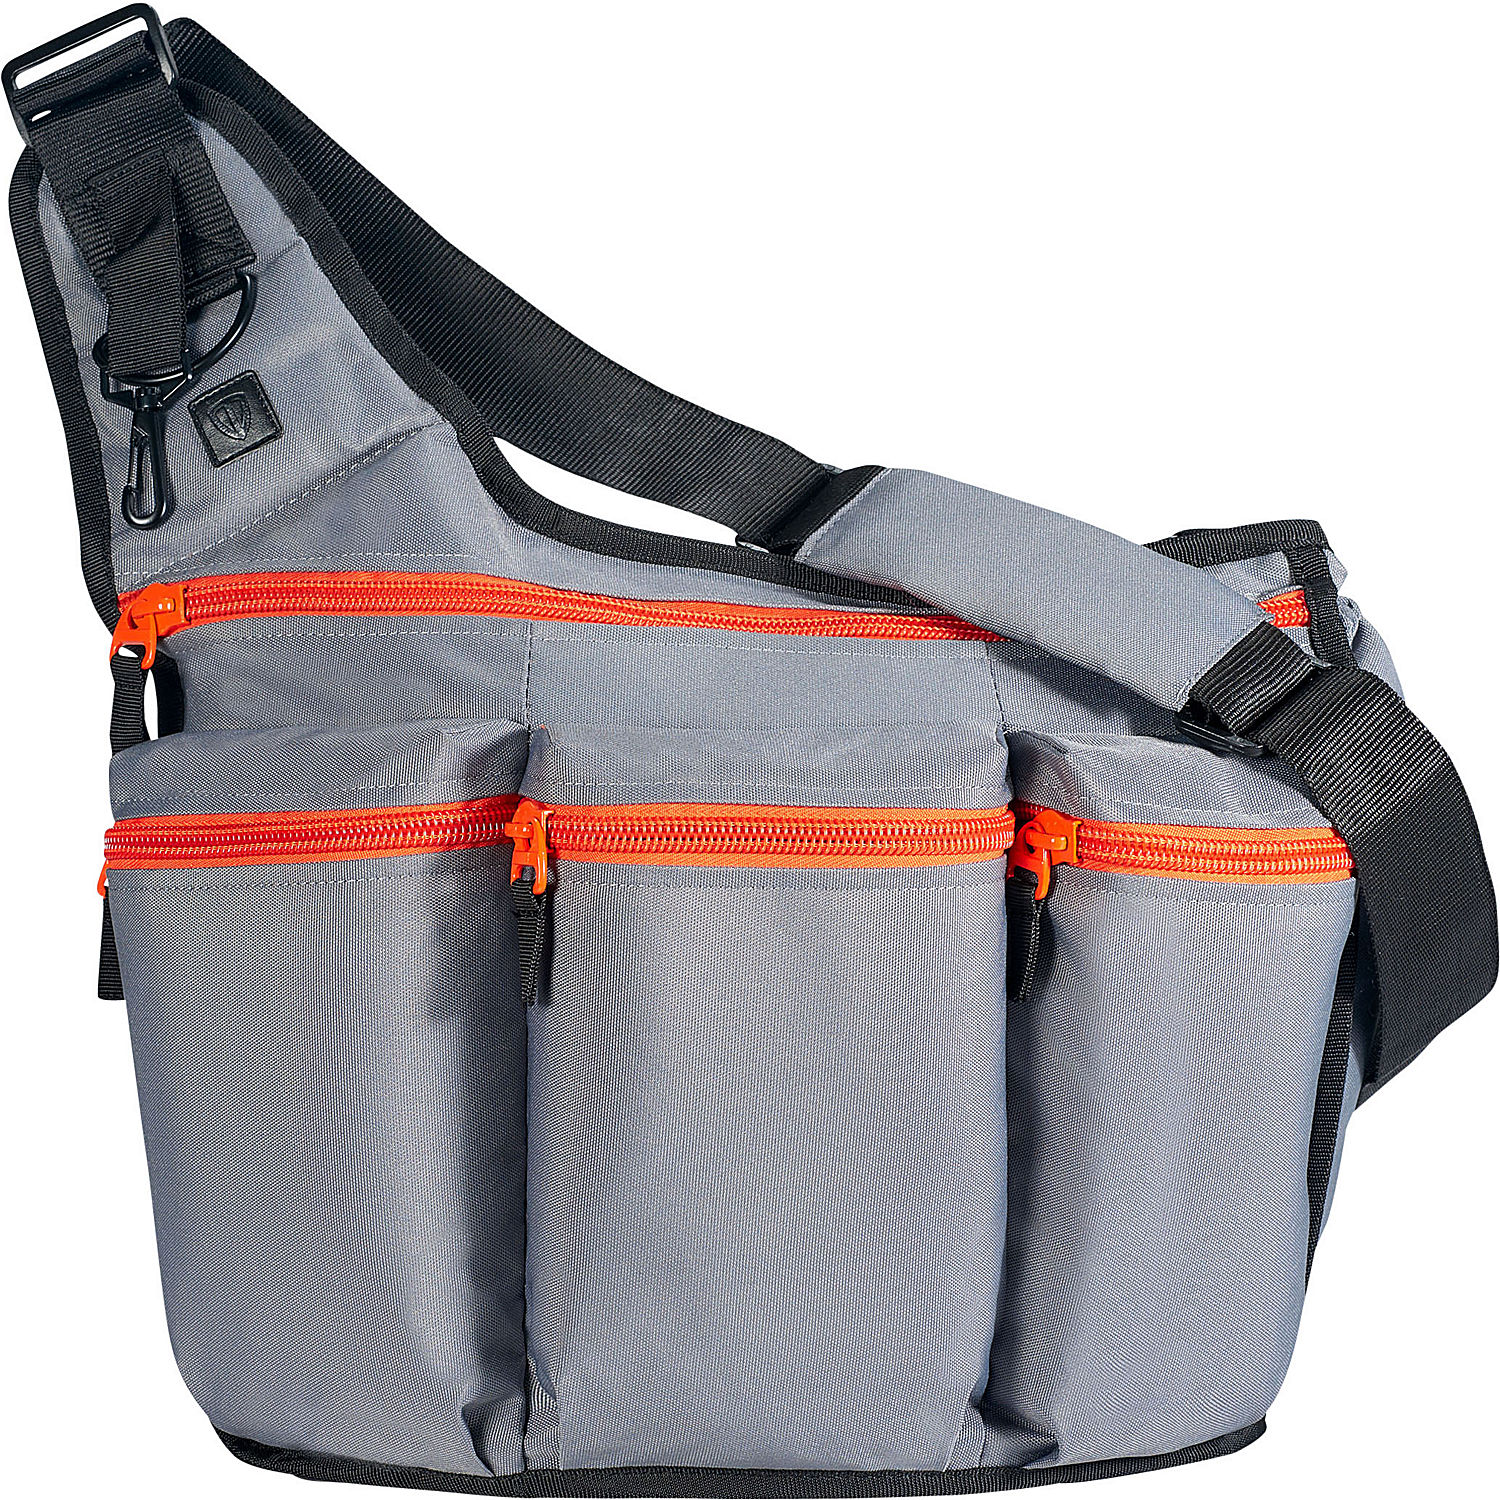 diaper dude charcoal diaper bag with orange zippers. Black Bedroom Furniture Sets. Home Design Ideas